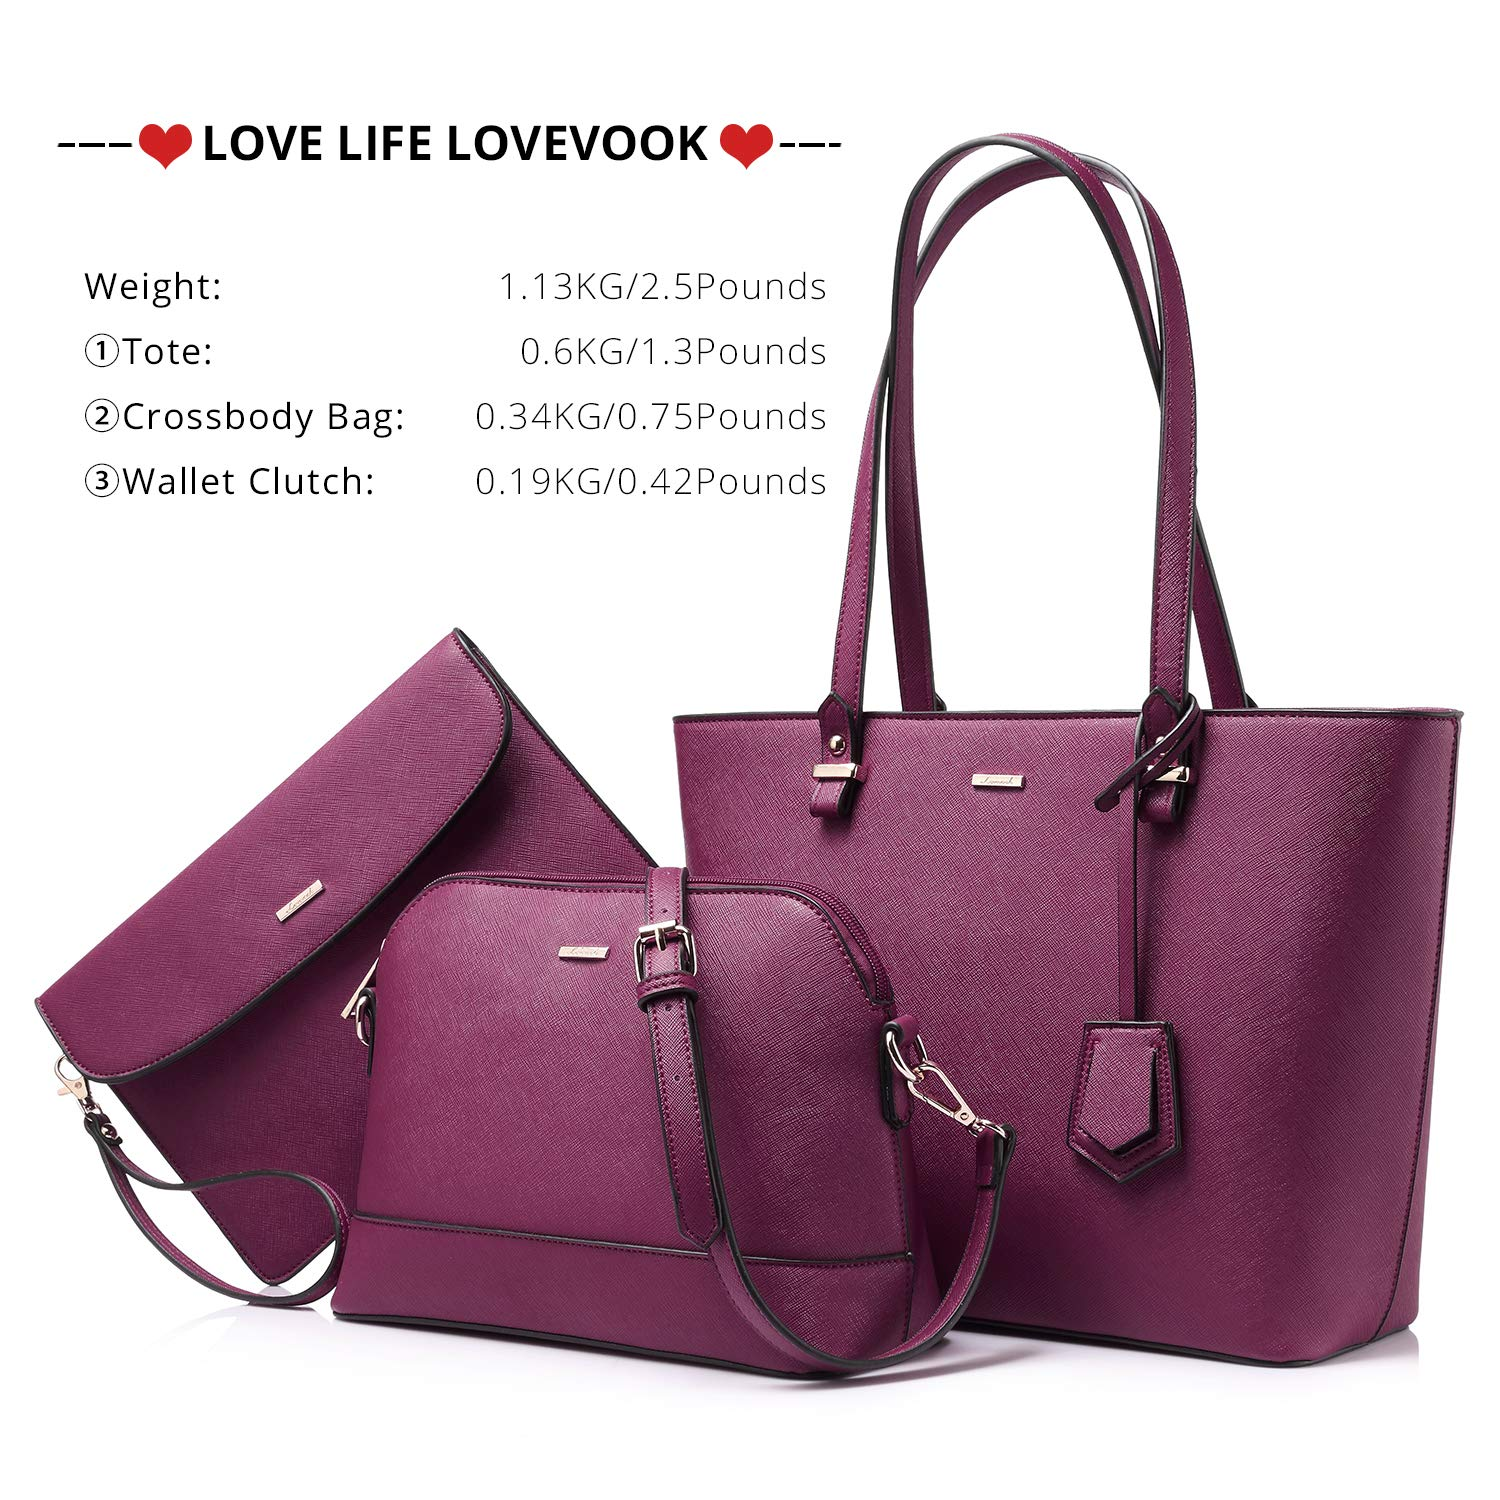 Handbags for Women Tote Bag Shoulder Bags Fashion Satchel Top Handle Structured Purse Set Designer Purses 3PCS PU Stand Gift Sexy Purple by LOVEVOOK (Image #6)